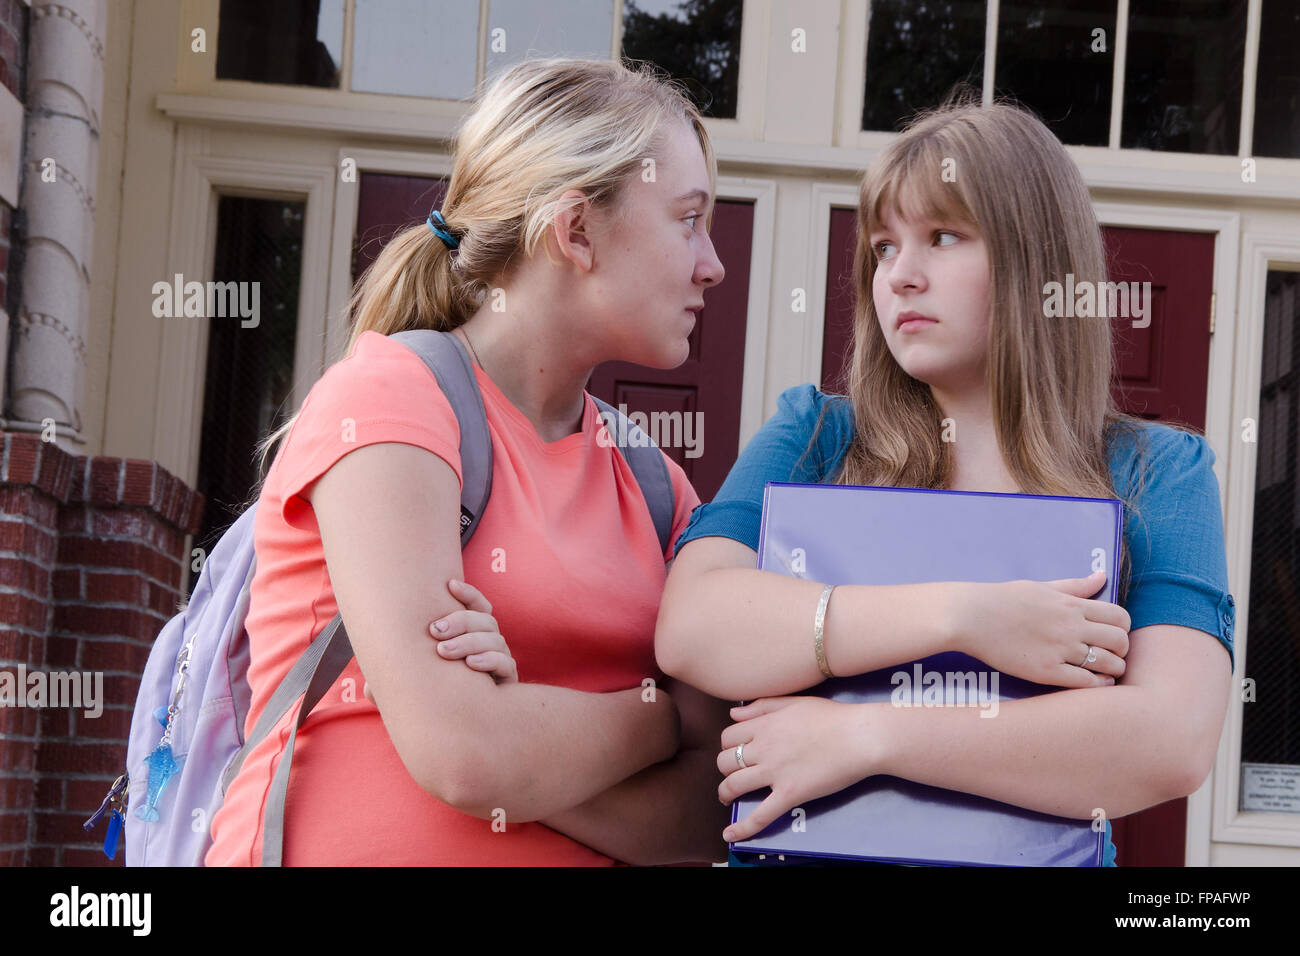 An aggressive teen girl intimidates another girl in front of their school, probably over a boy. - Stock Image